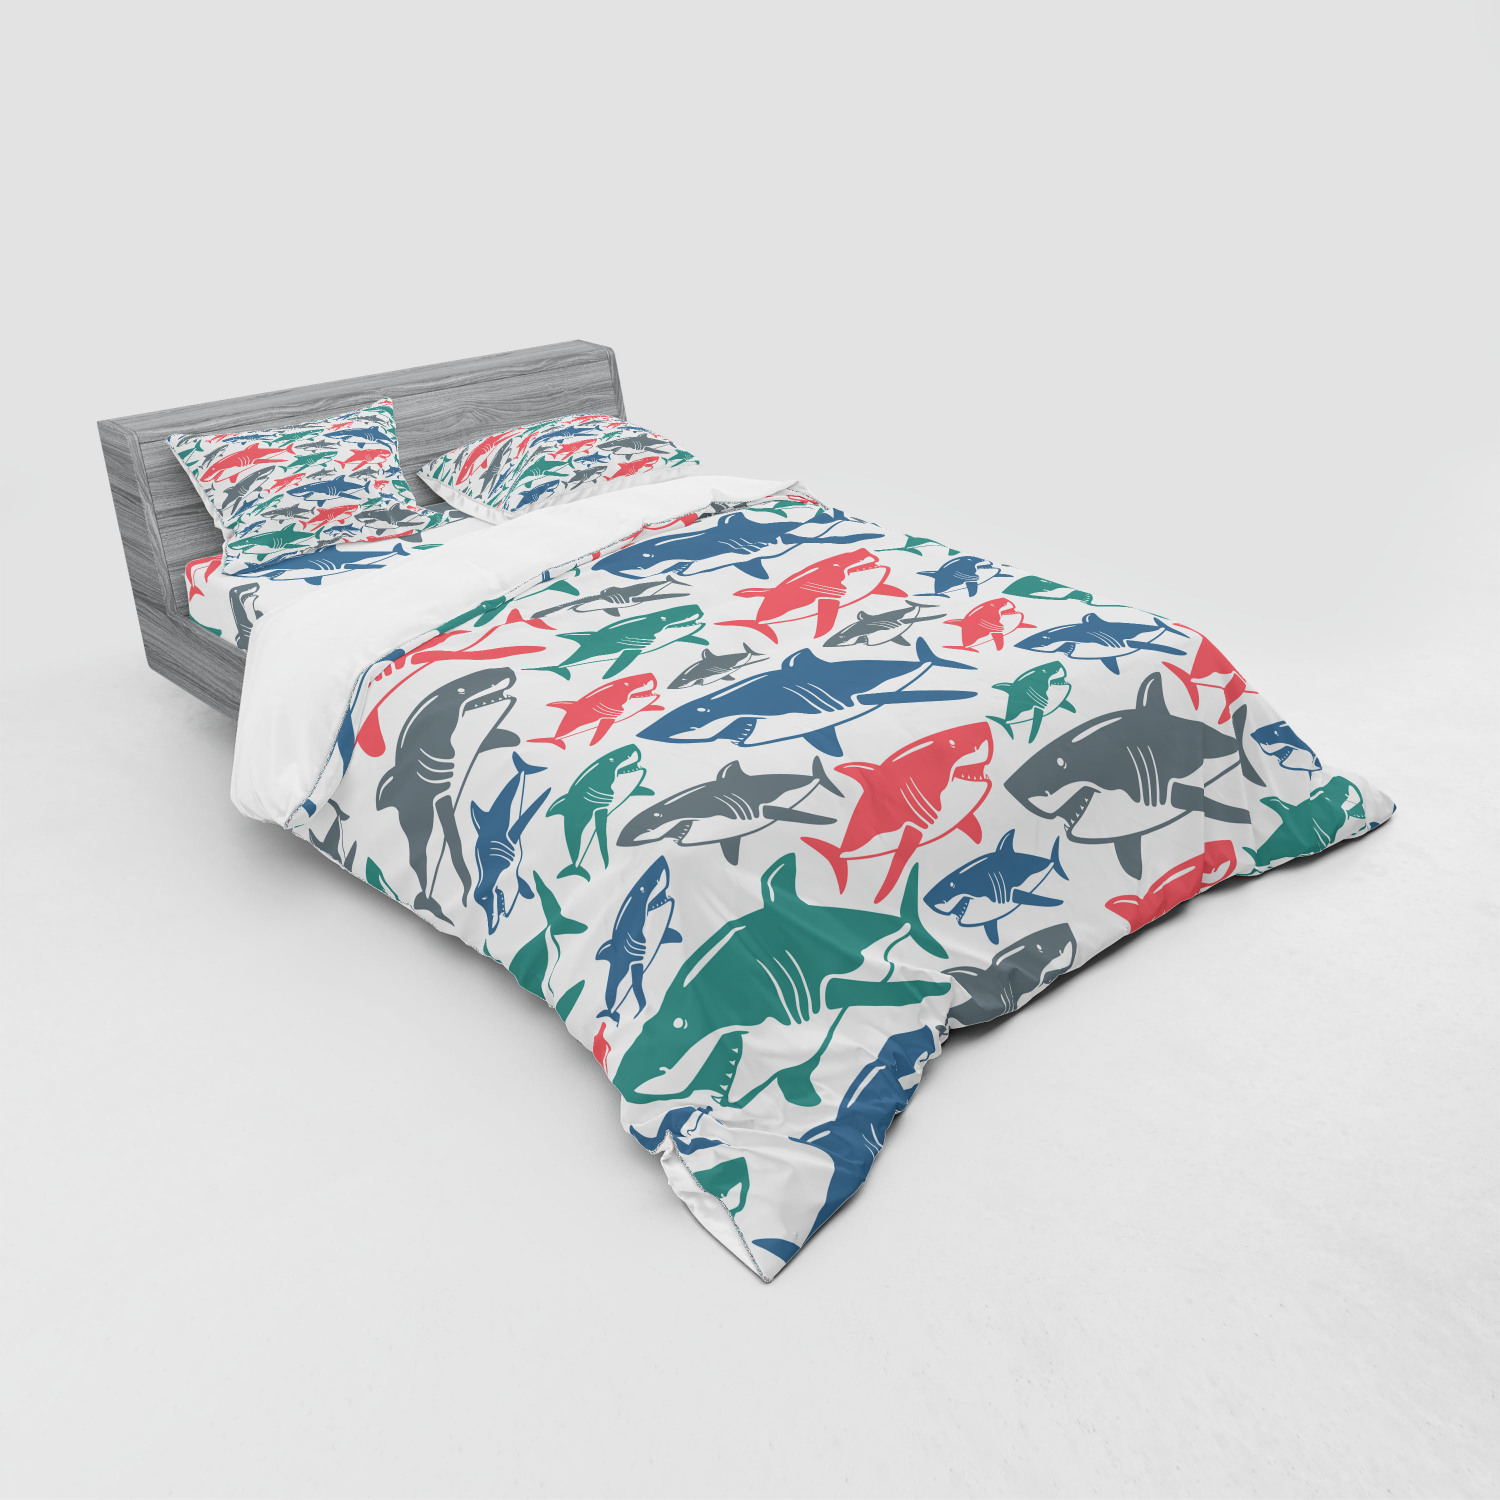 Shark Duvet Cover Set Mix Of Colorful Bull Shark Family Pattern Masters Survival Predators Dangerous Nature Bedding Set With Shams And Fitted Sheet 3 Sizes By Ambesonne Walmart Com Walmart Com